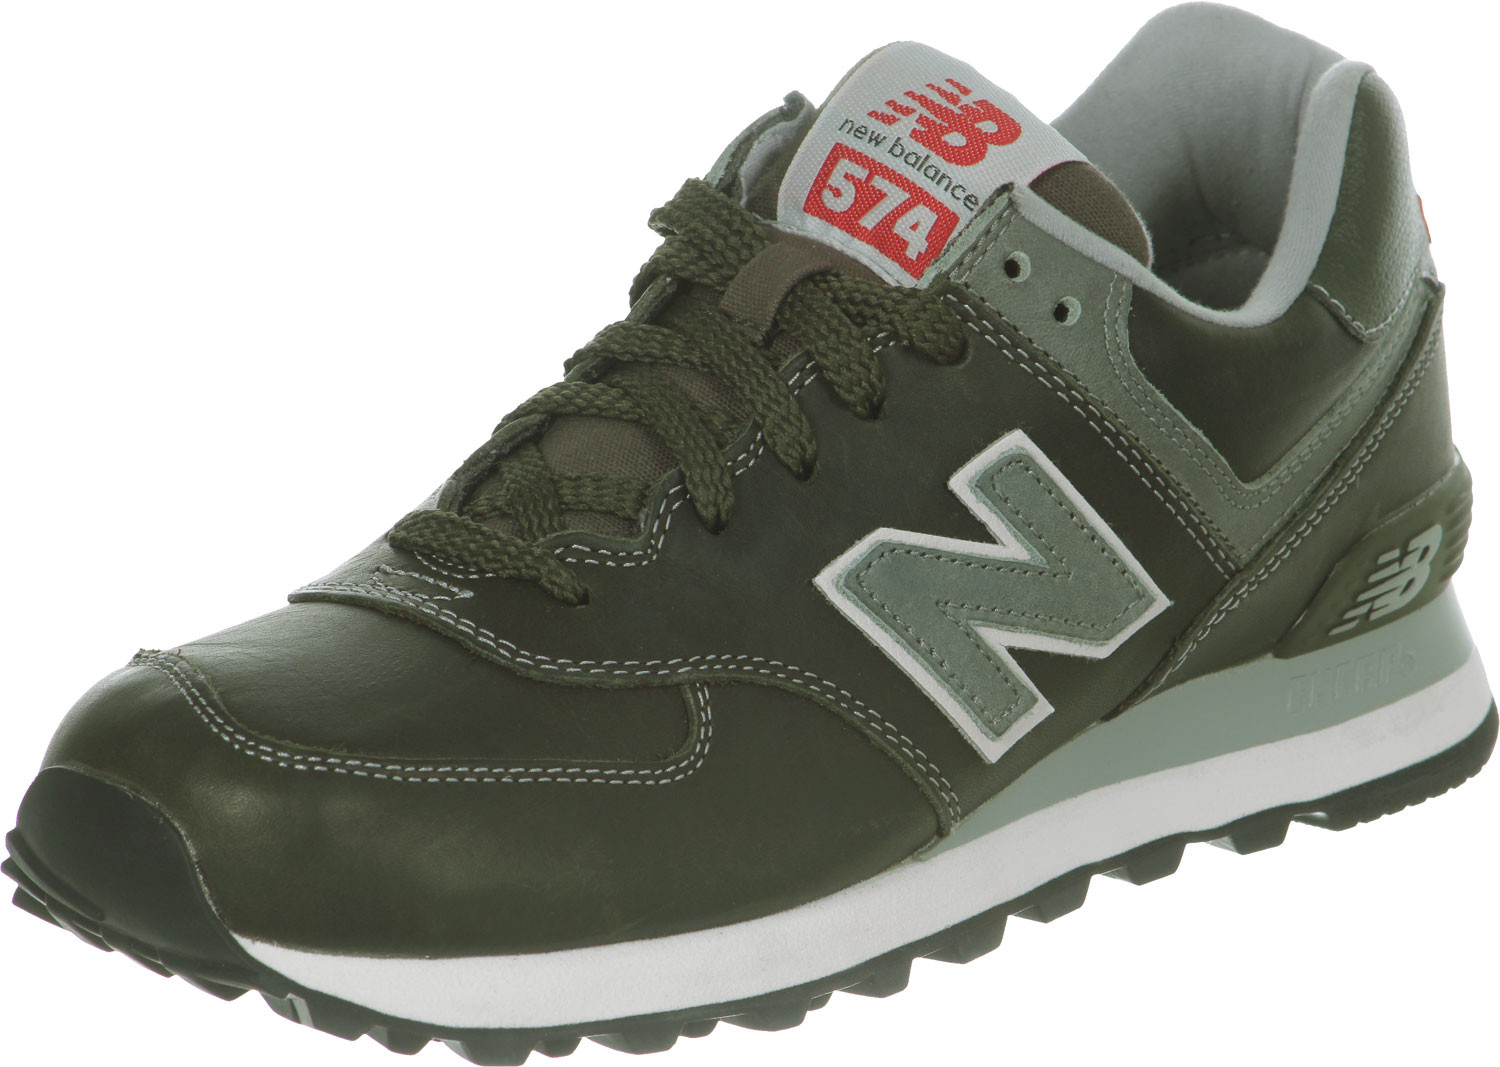 New Balance Marrones Hombre Fresco New Balance Ml574 Schuhe Oliv Of 37  Innovador New Balance Marrones Hombre